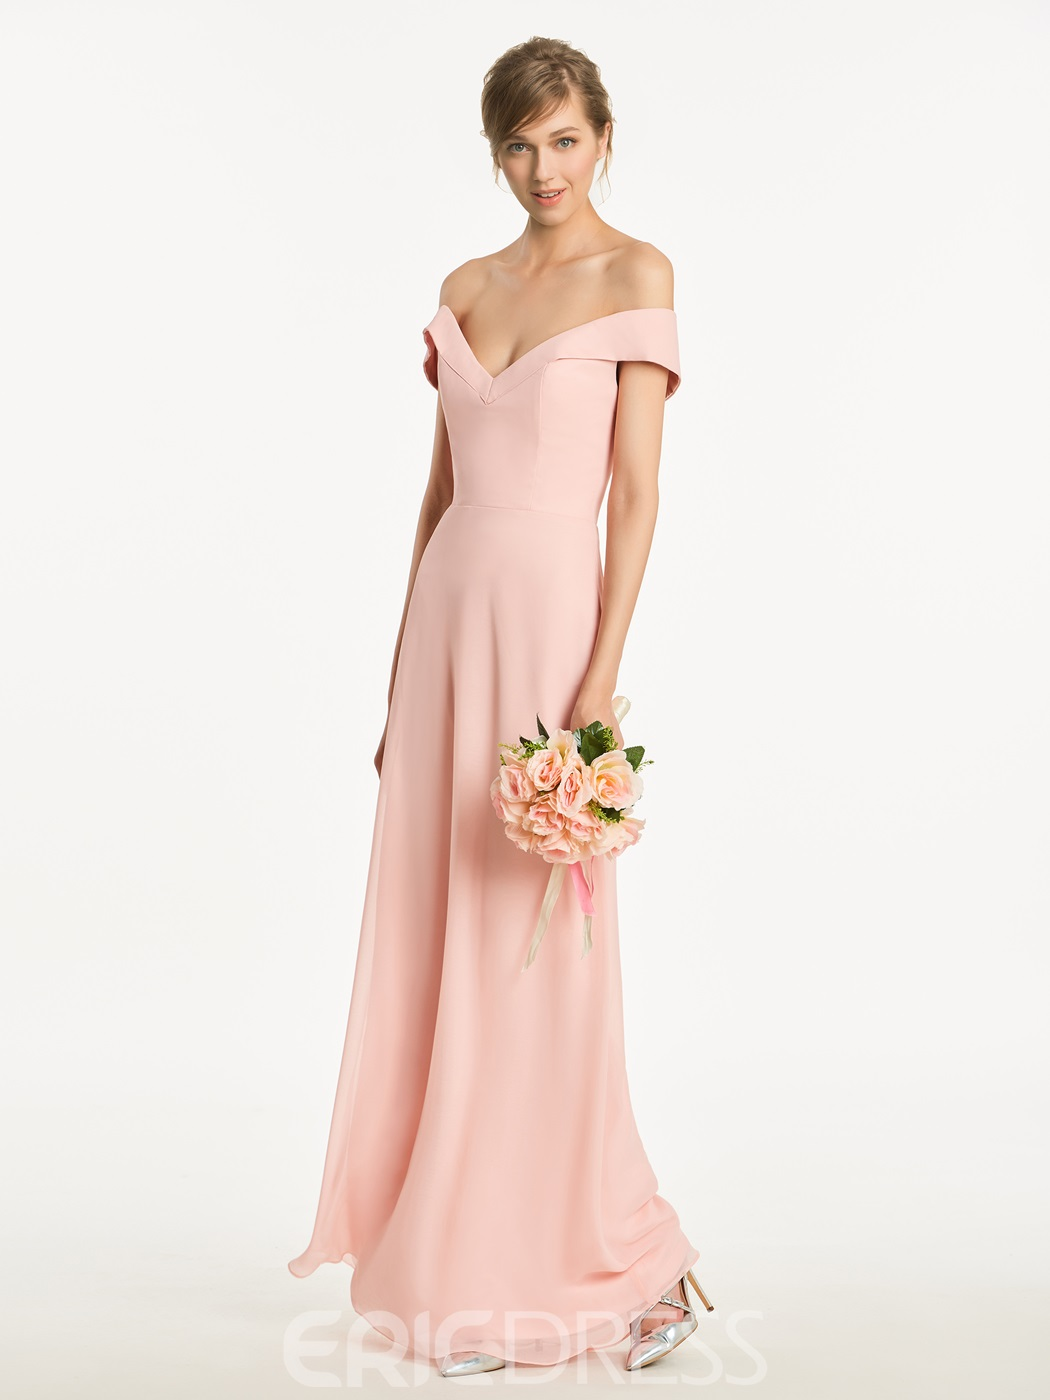 Ericdress Off The Shoulder A LineCriss Cross Straps Long Bridesmaid Dress